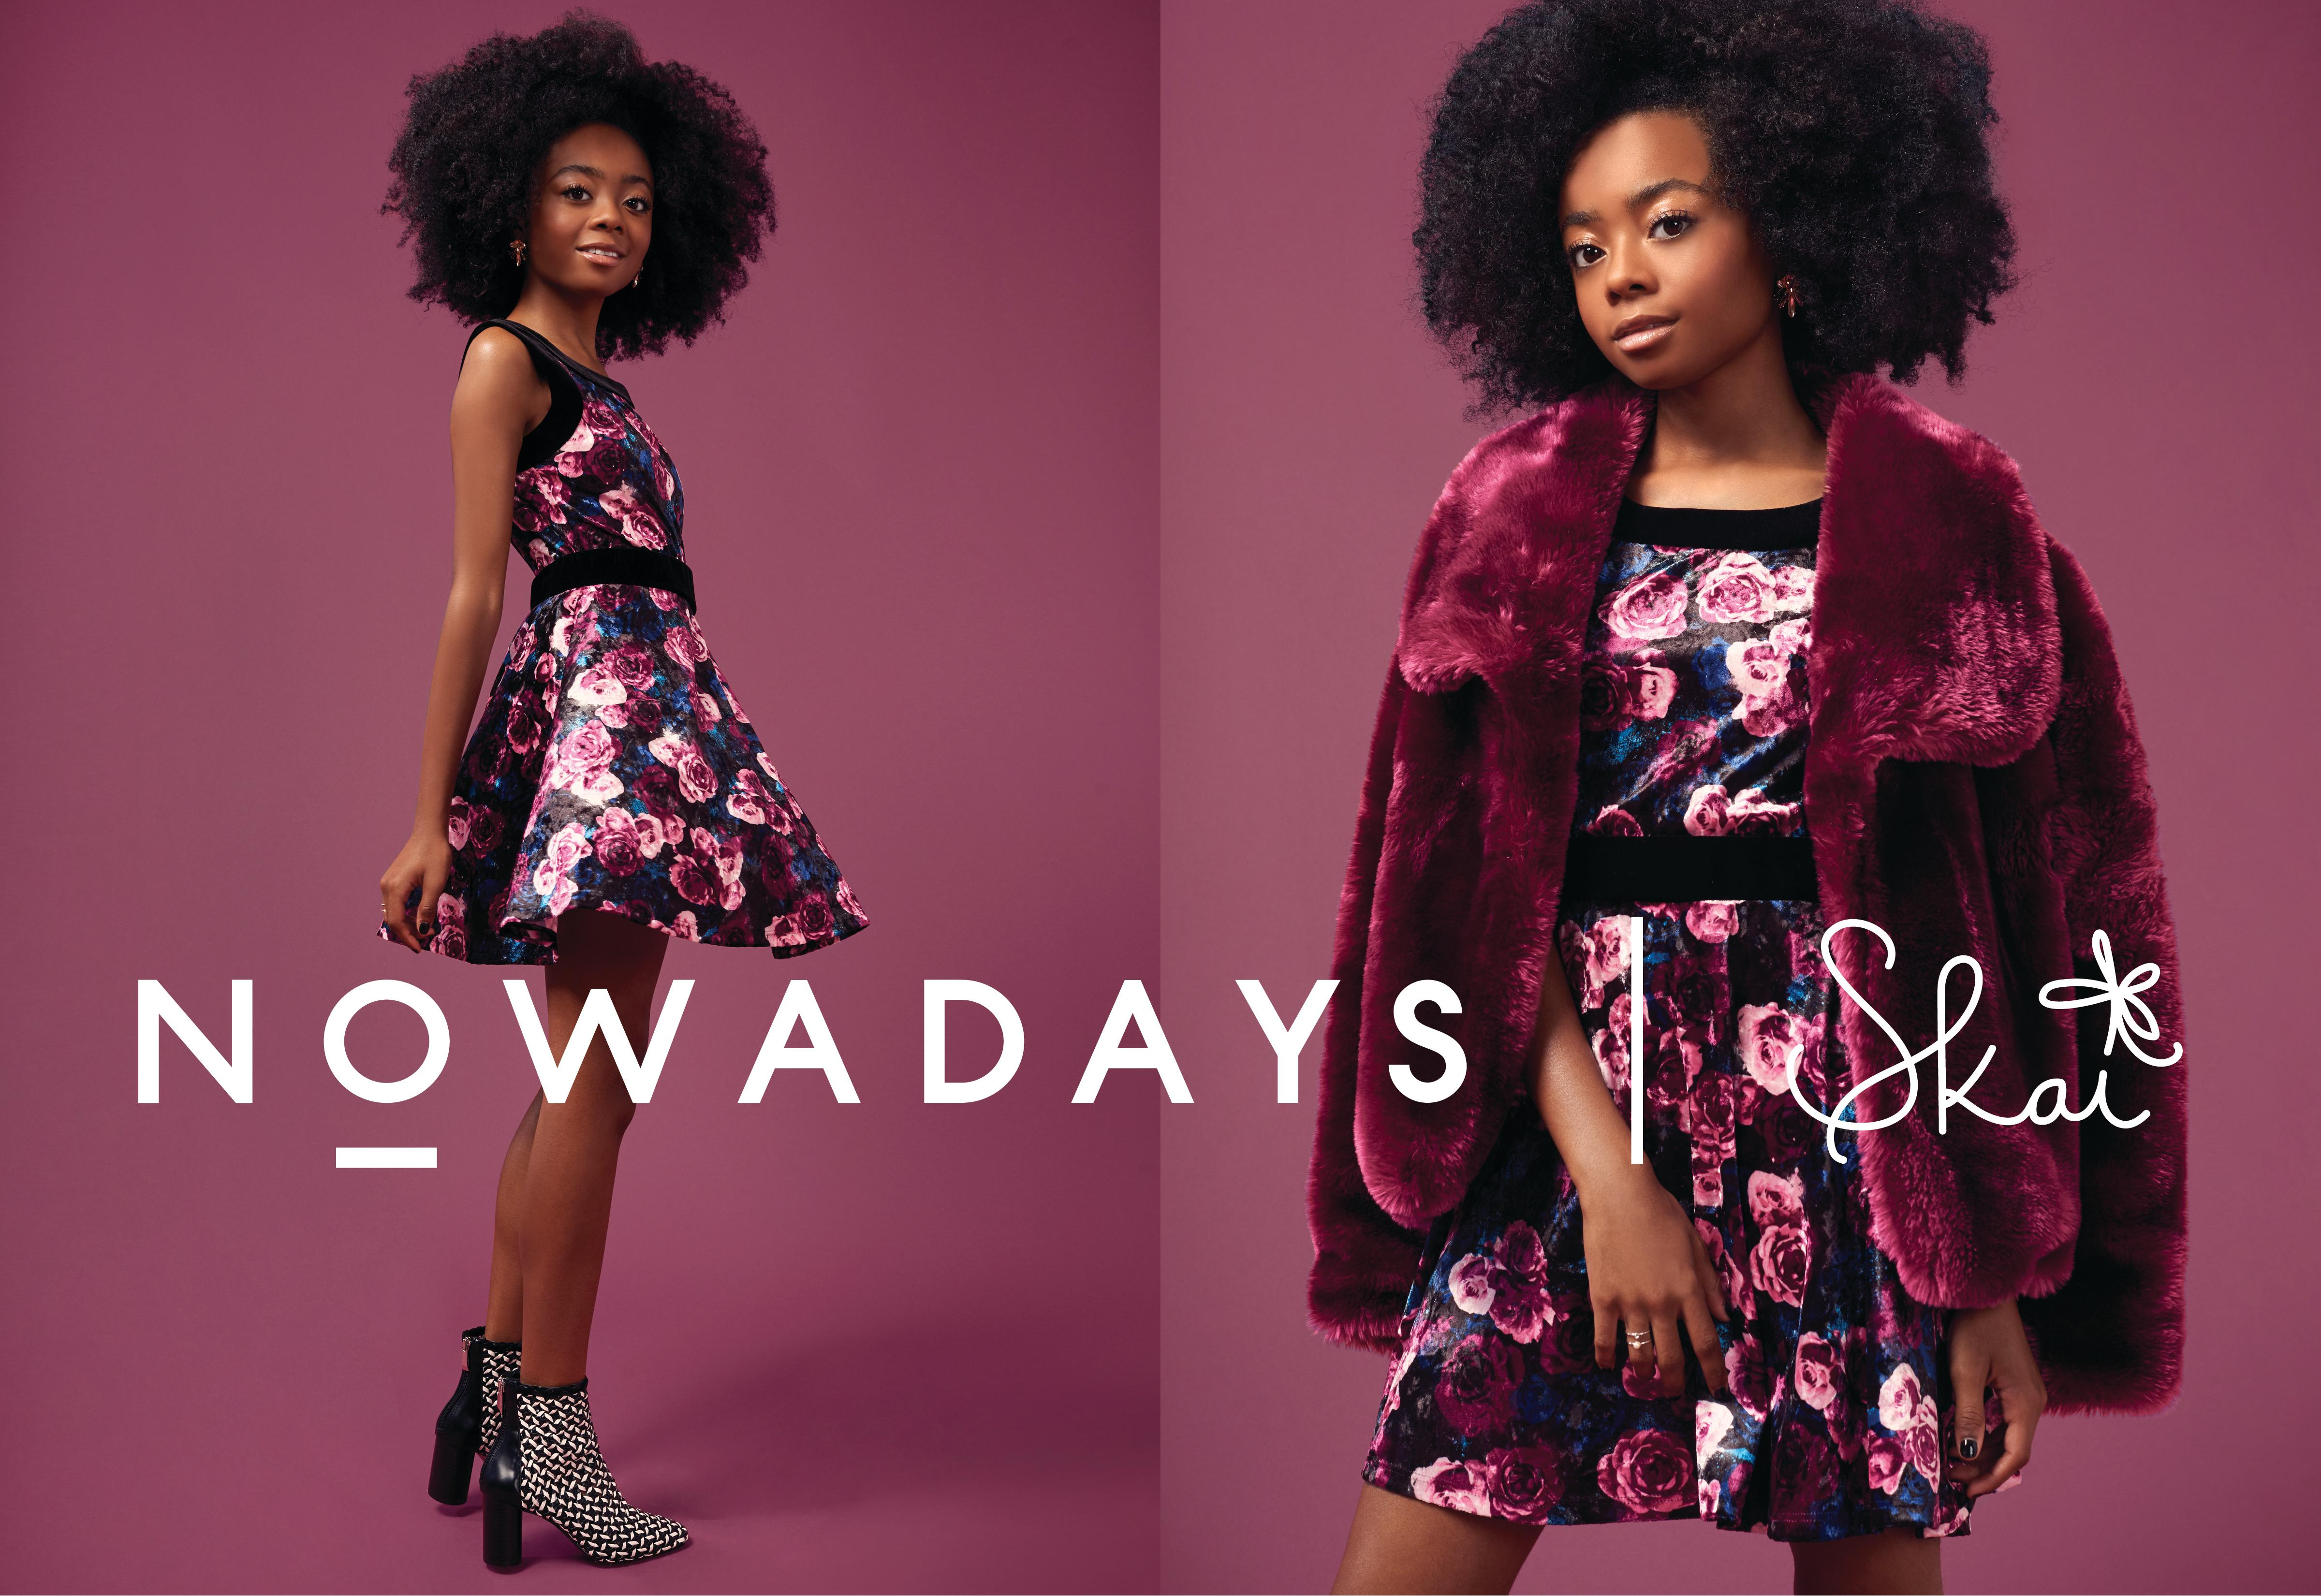 Skai Jackson mixes feminine with edgy details in this floral dress, faux fur coat and ankle bootie ensemble. (Photo courtesy of Nowadays)